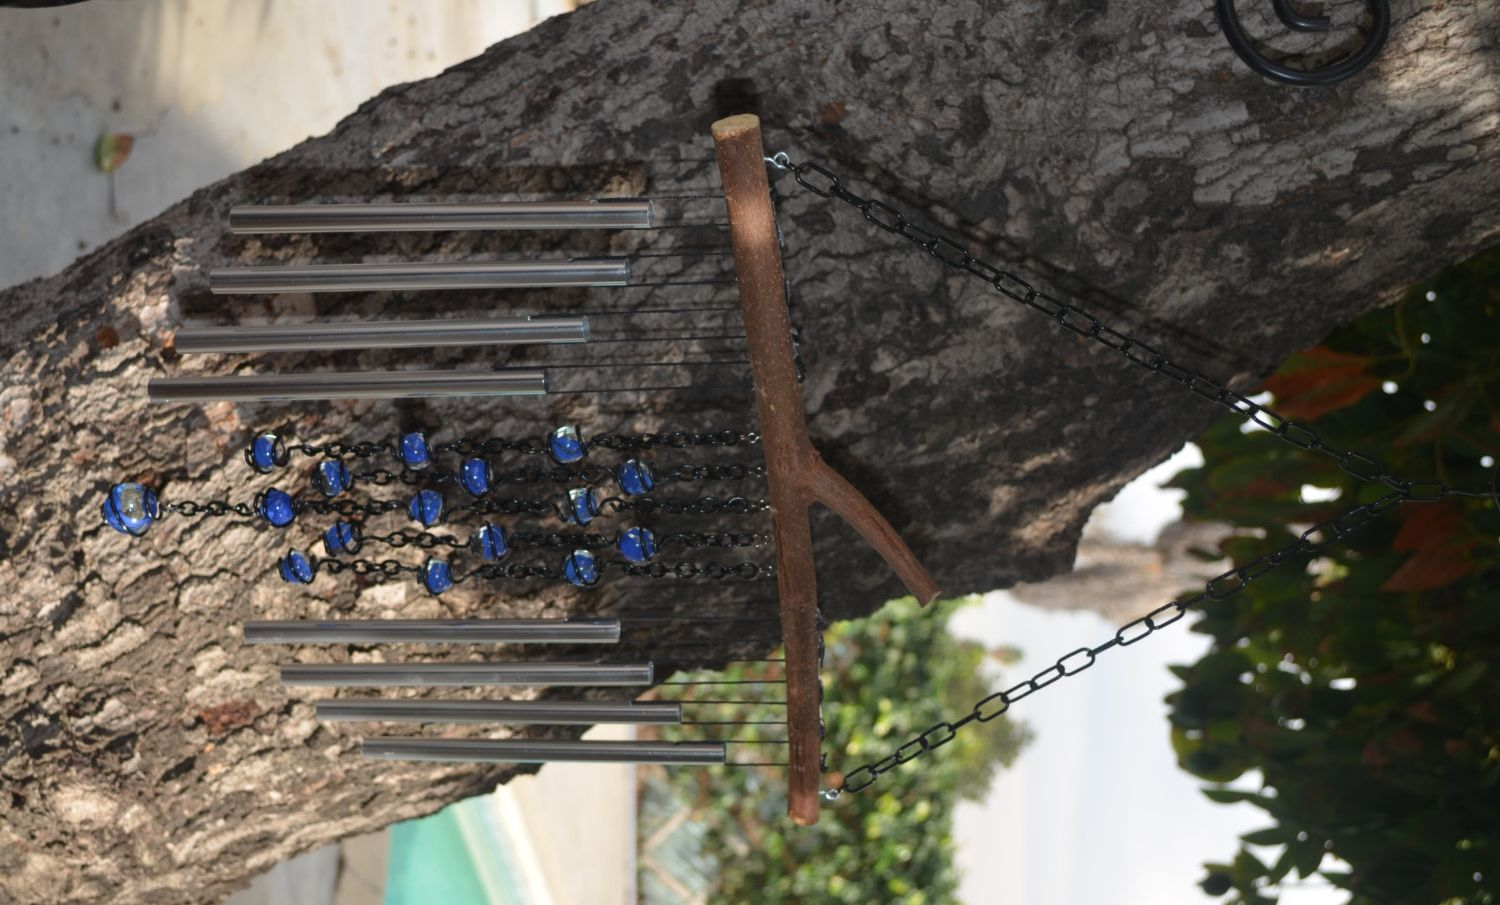 Outdoor Garden Decor Wind Chime Made With Recycled Tree Branch